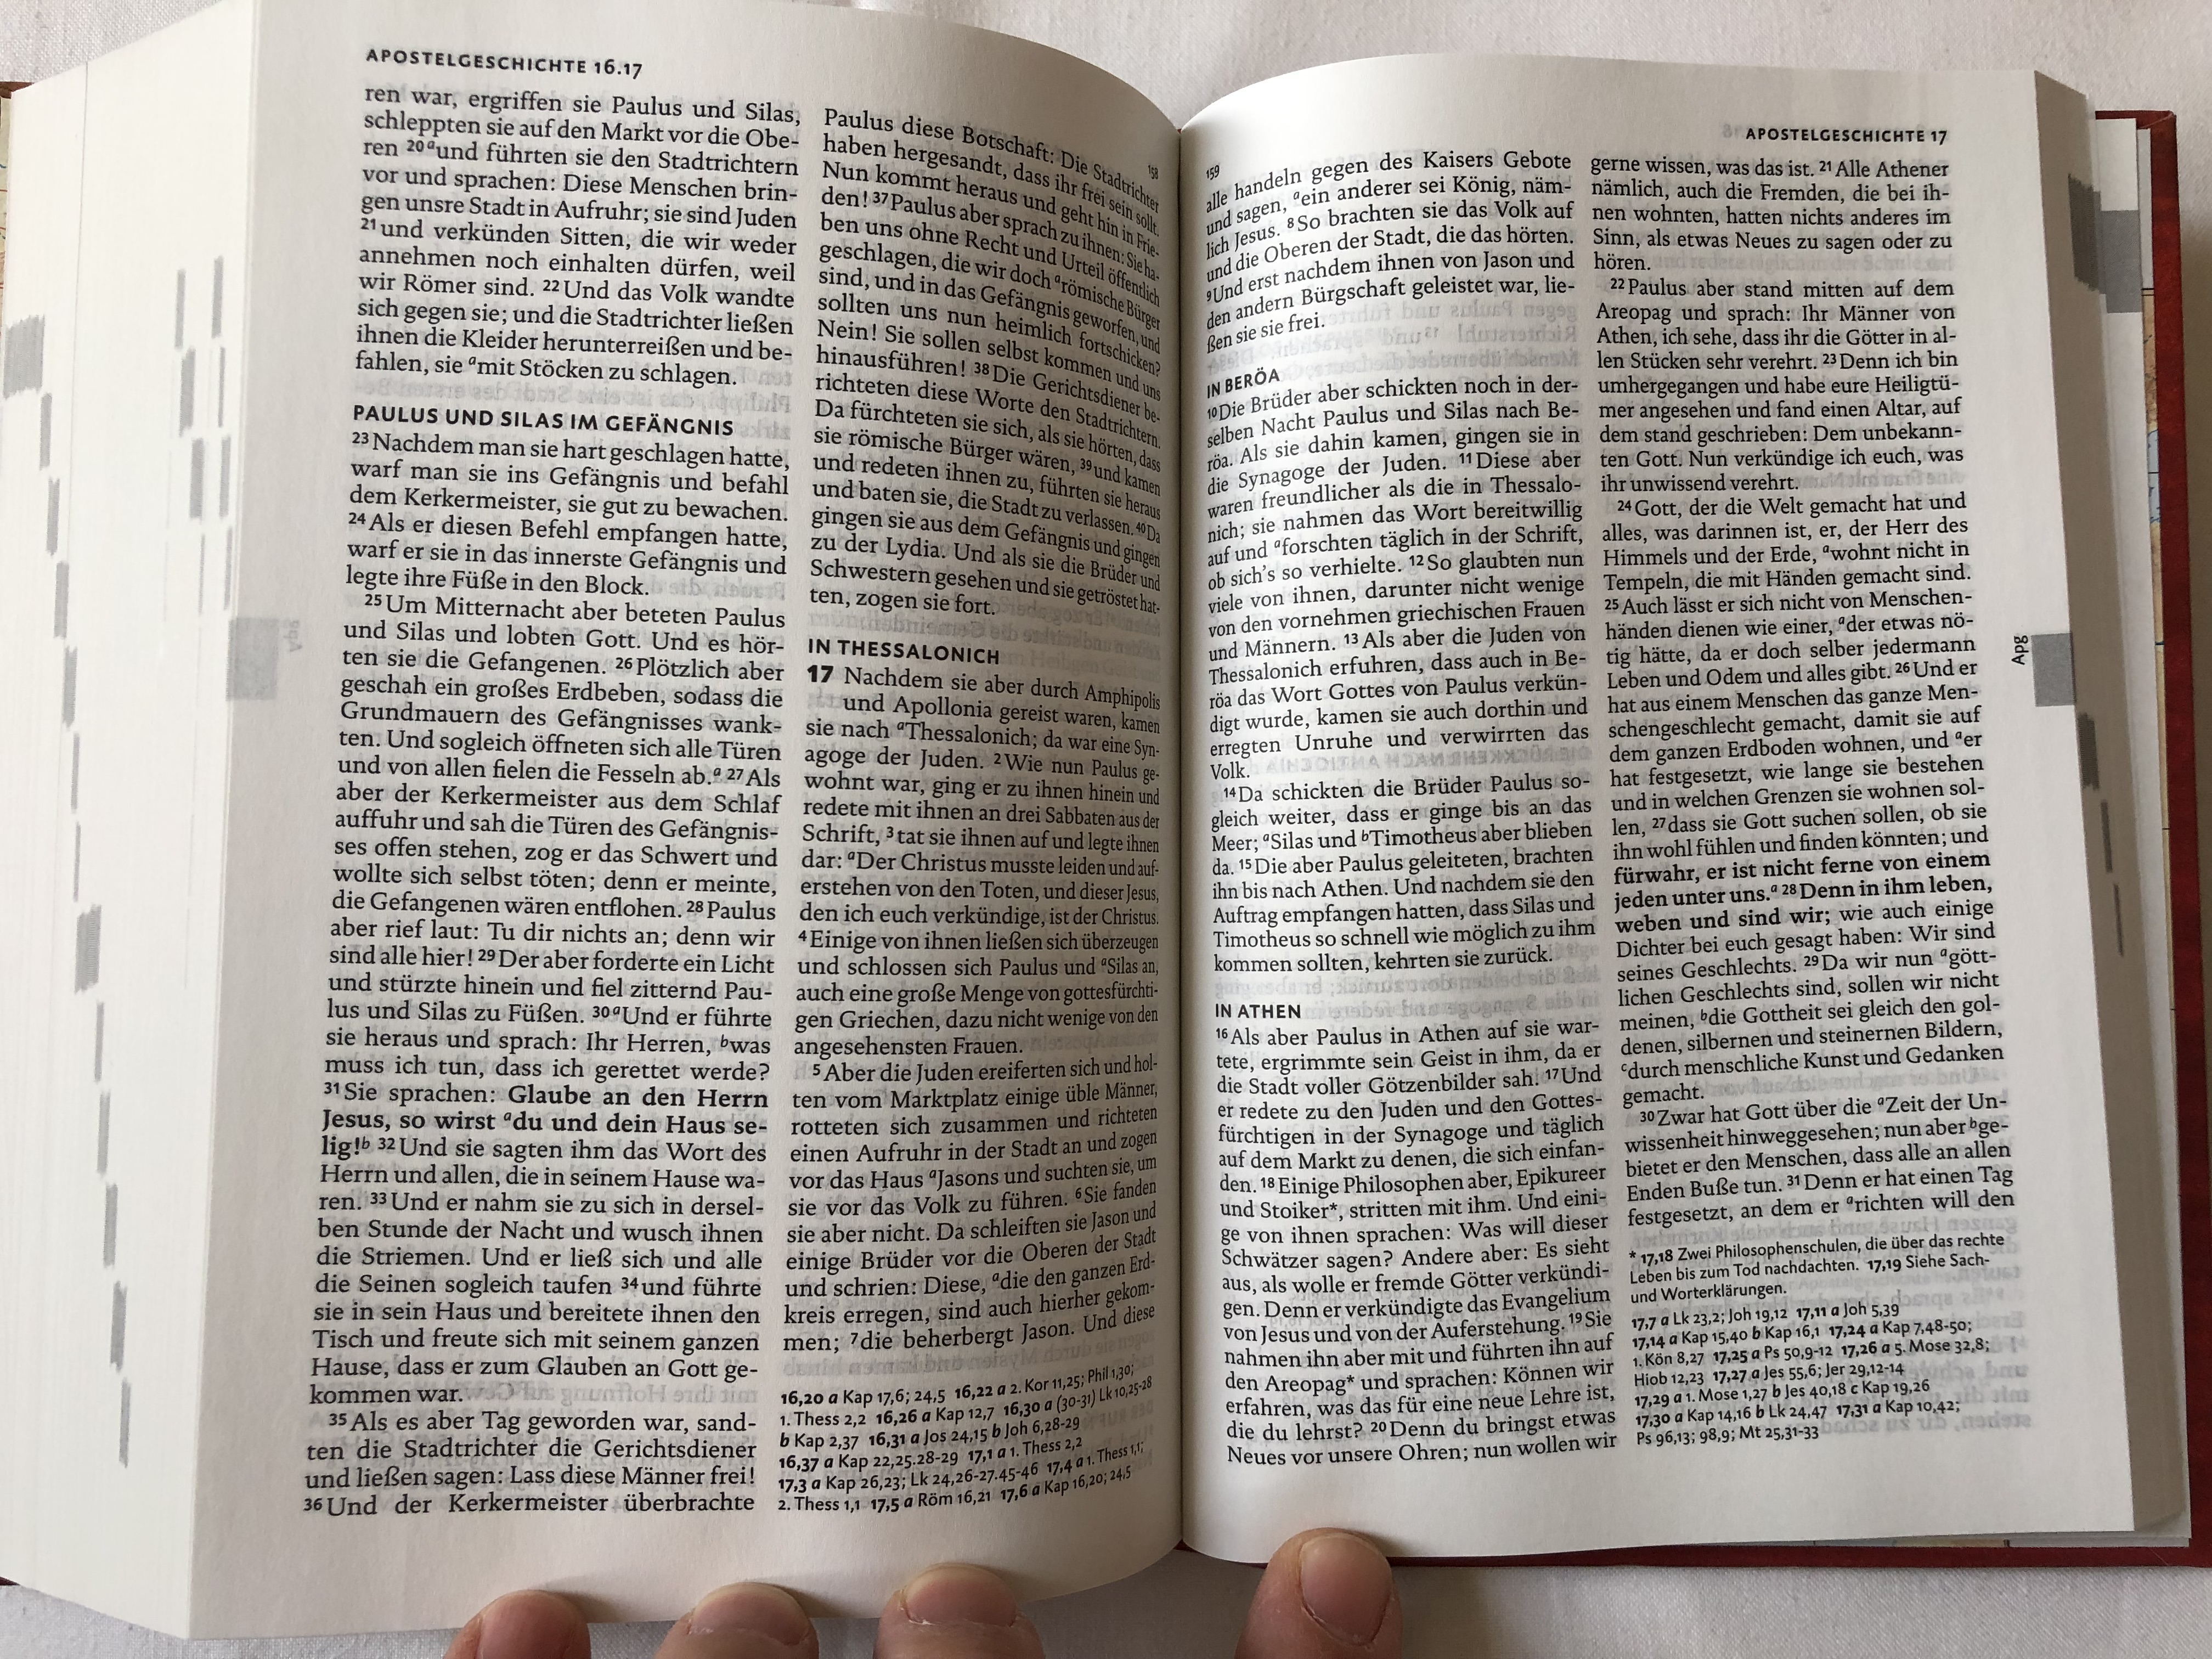 die-bibel-luther-bersetzung-schulbibel-german-language-bible-luther-translation-deutsche-bibelgesellschaft-mit-apocryphen-translation-2017-rev.-with-apocrypha-page-index-color-maps-hardcover-13-.jpg